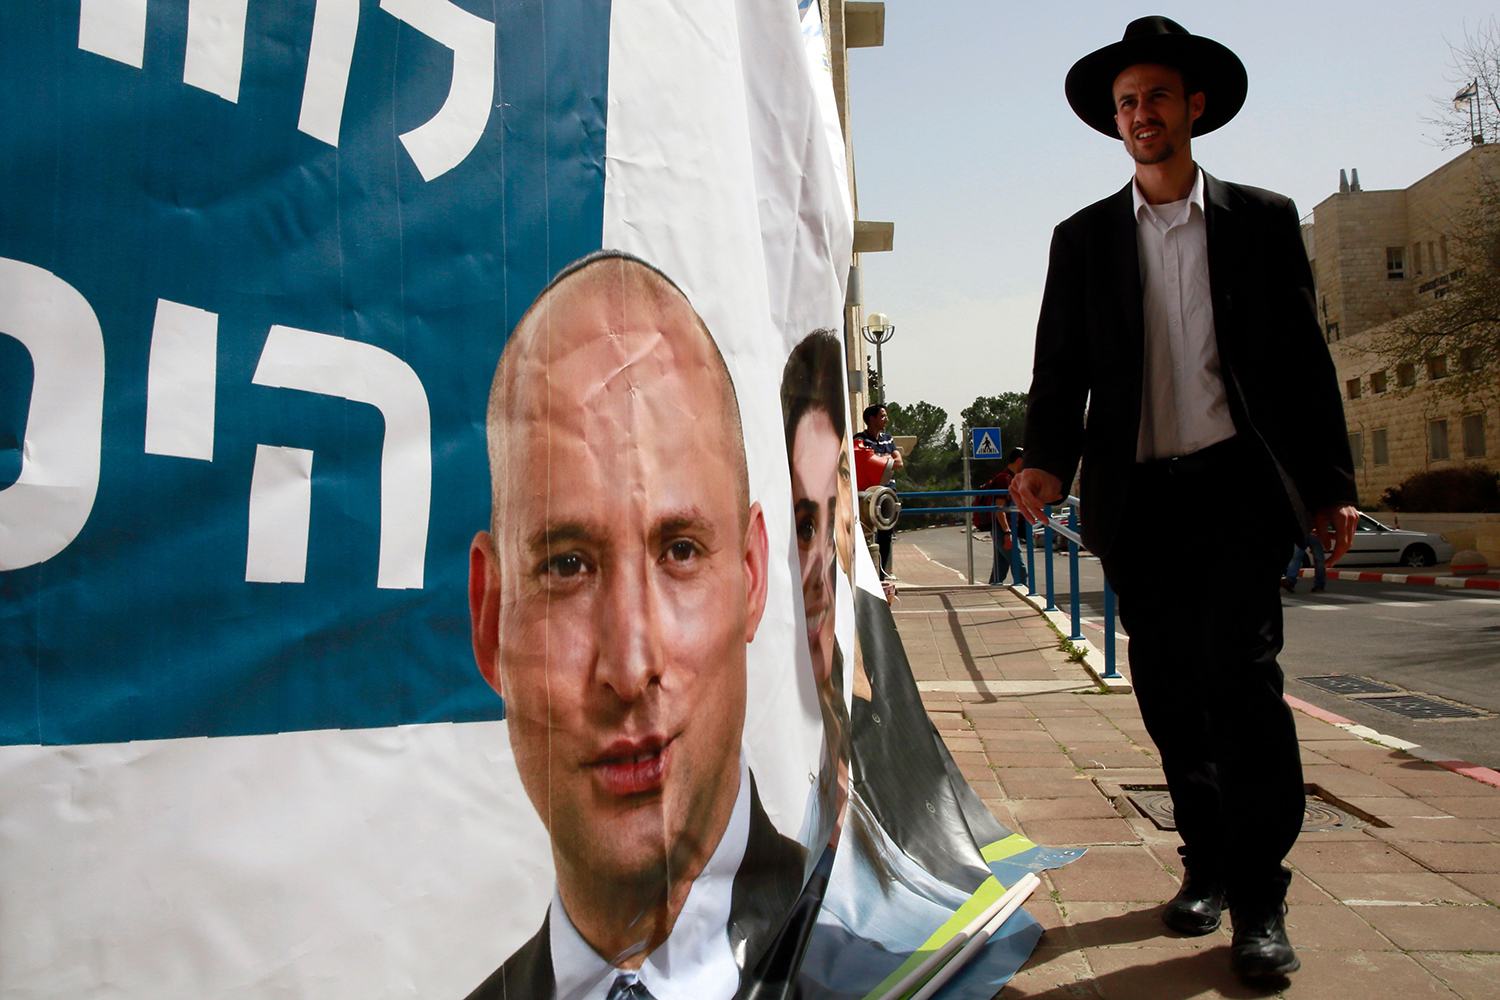 An Israeli man walks past an election campaign poster for Bennett, as he heads to Bennett's electoral rally in Jerusalem on March 8, 2015.